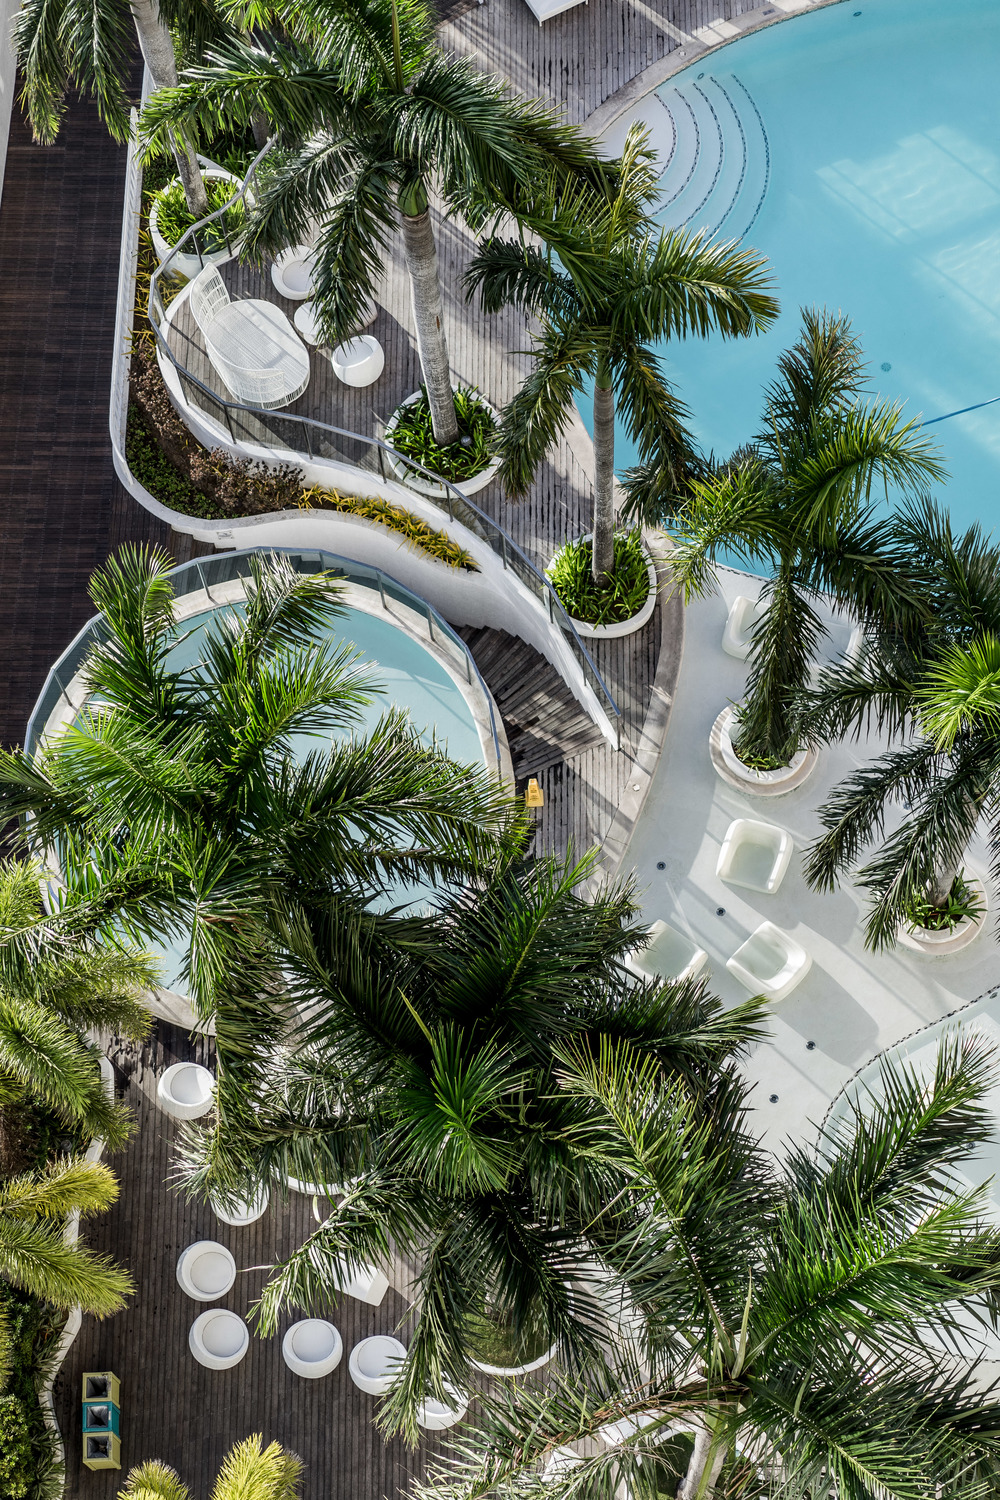 View of the pool area from above (aka dangling my camera 10 stories high)